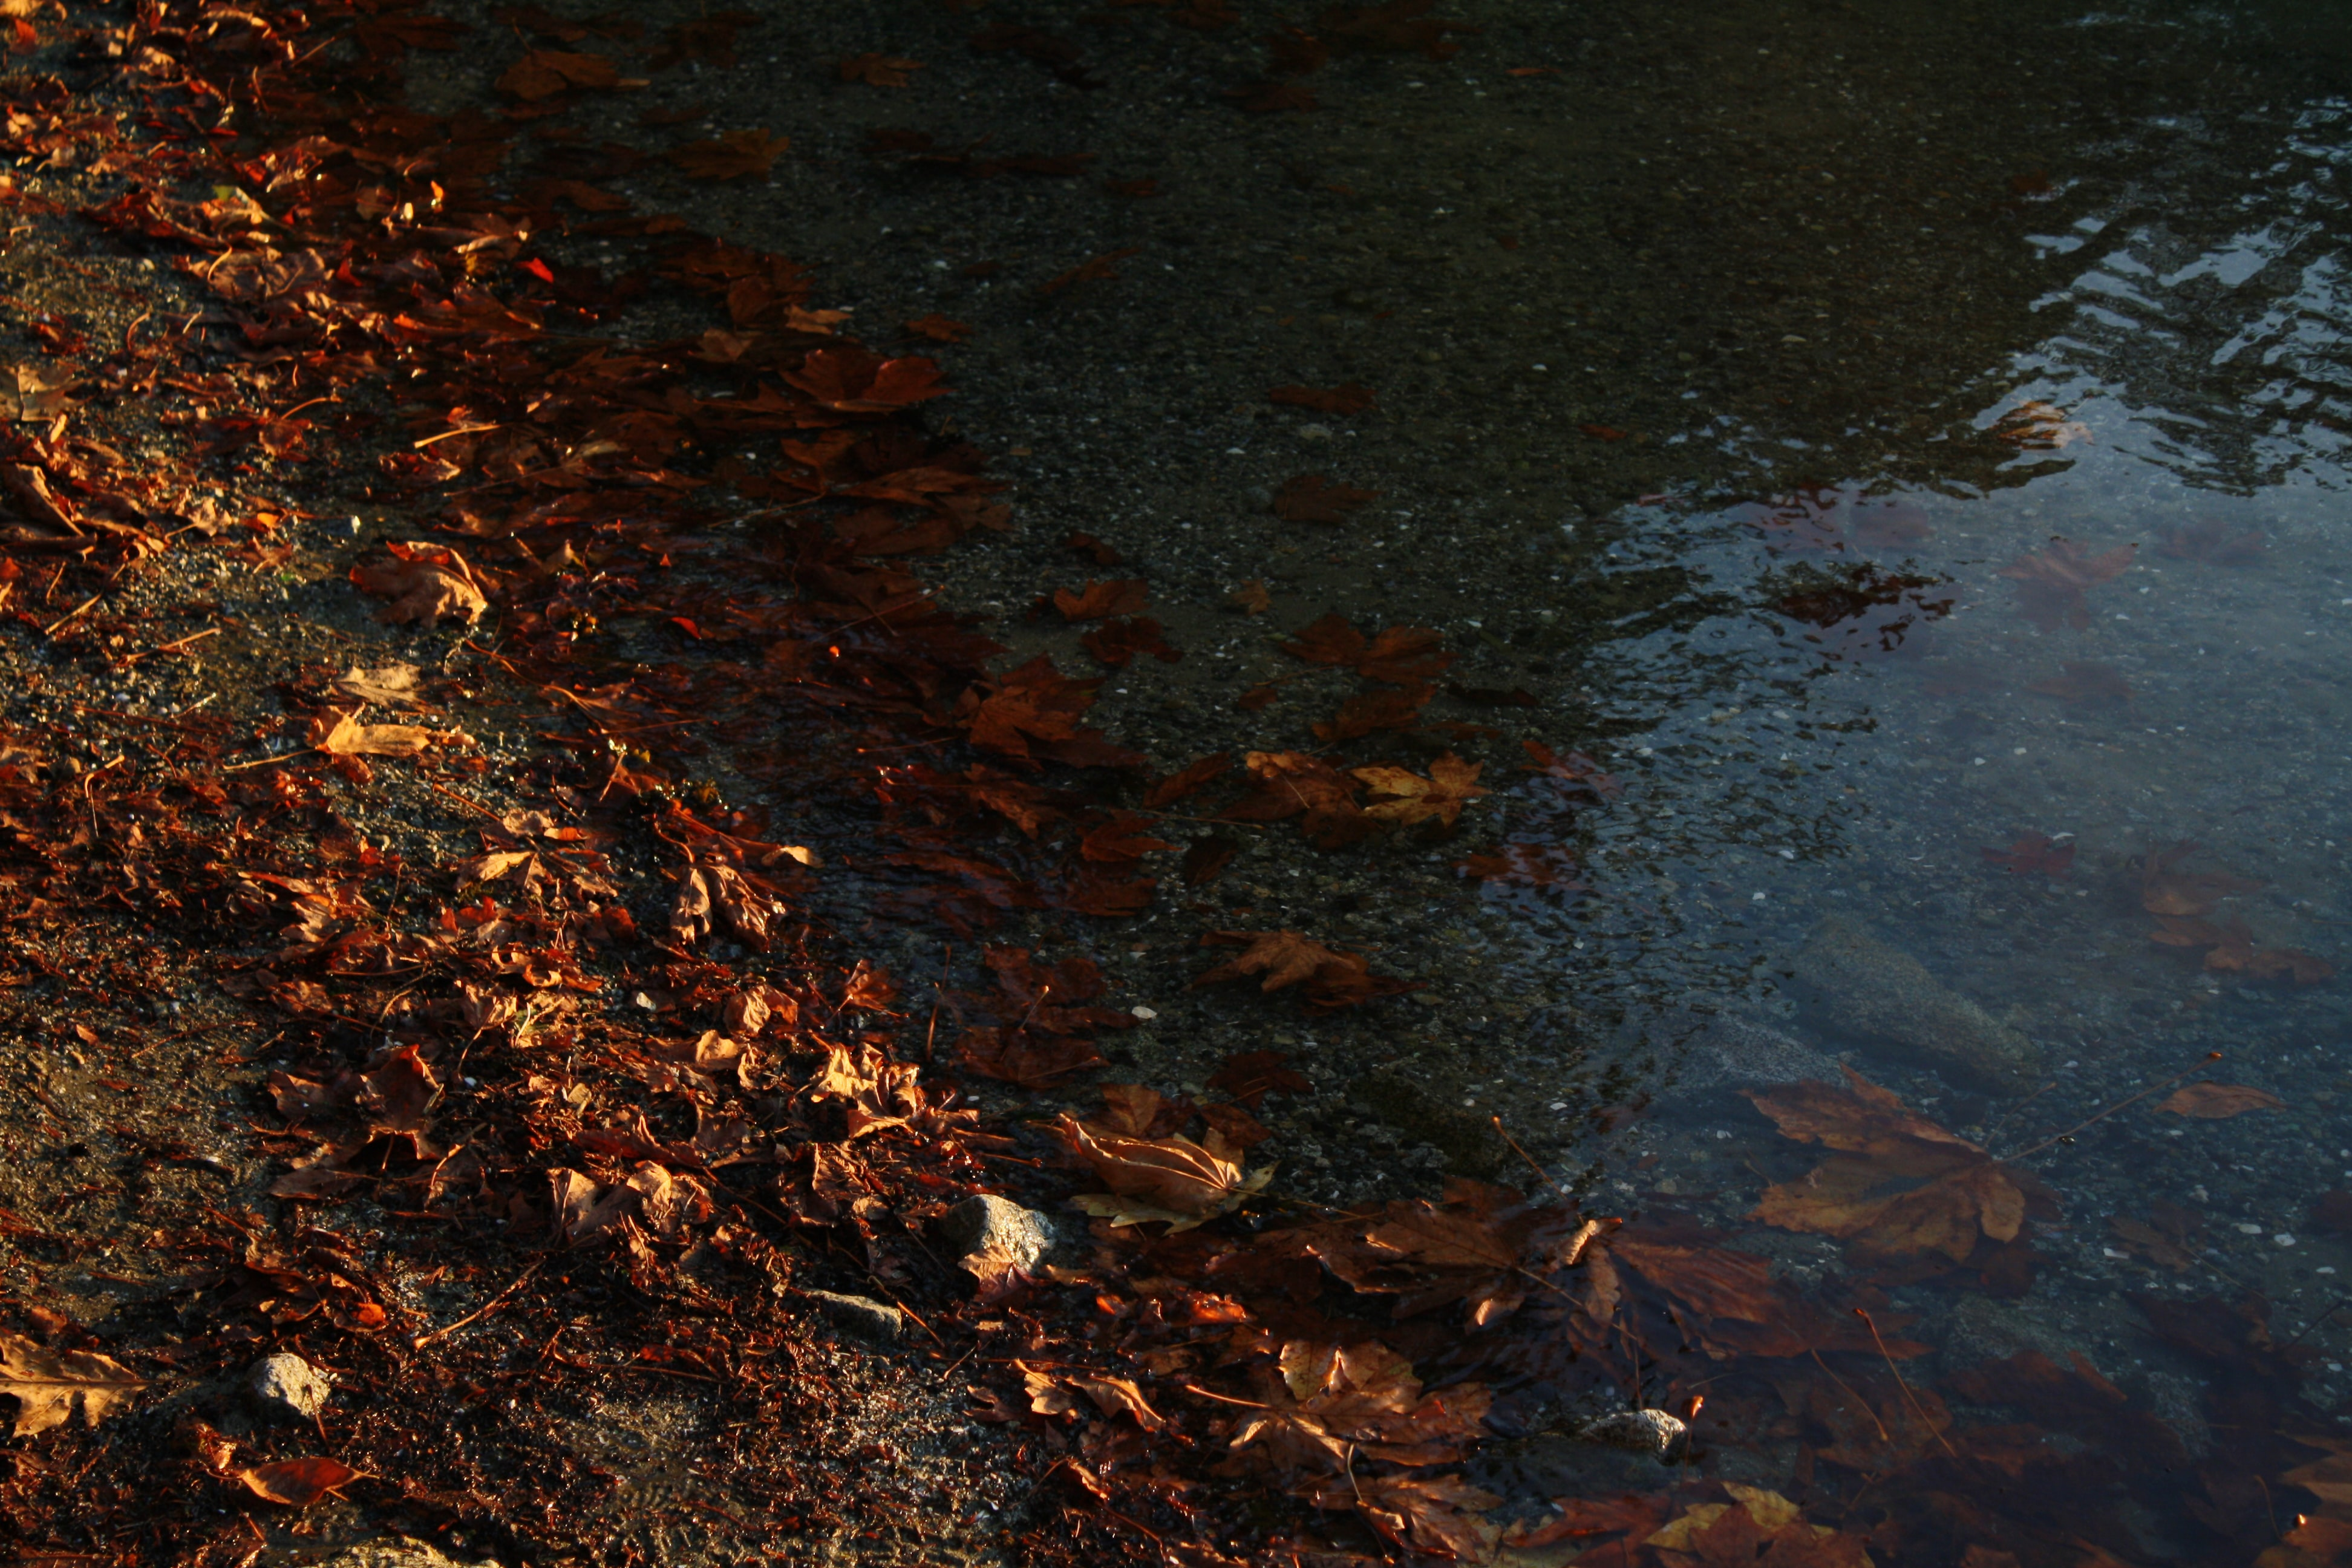 close up photography of withered leaves near body of water